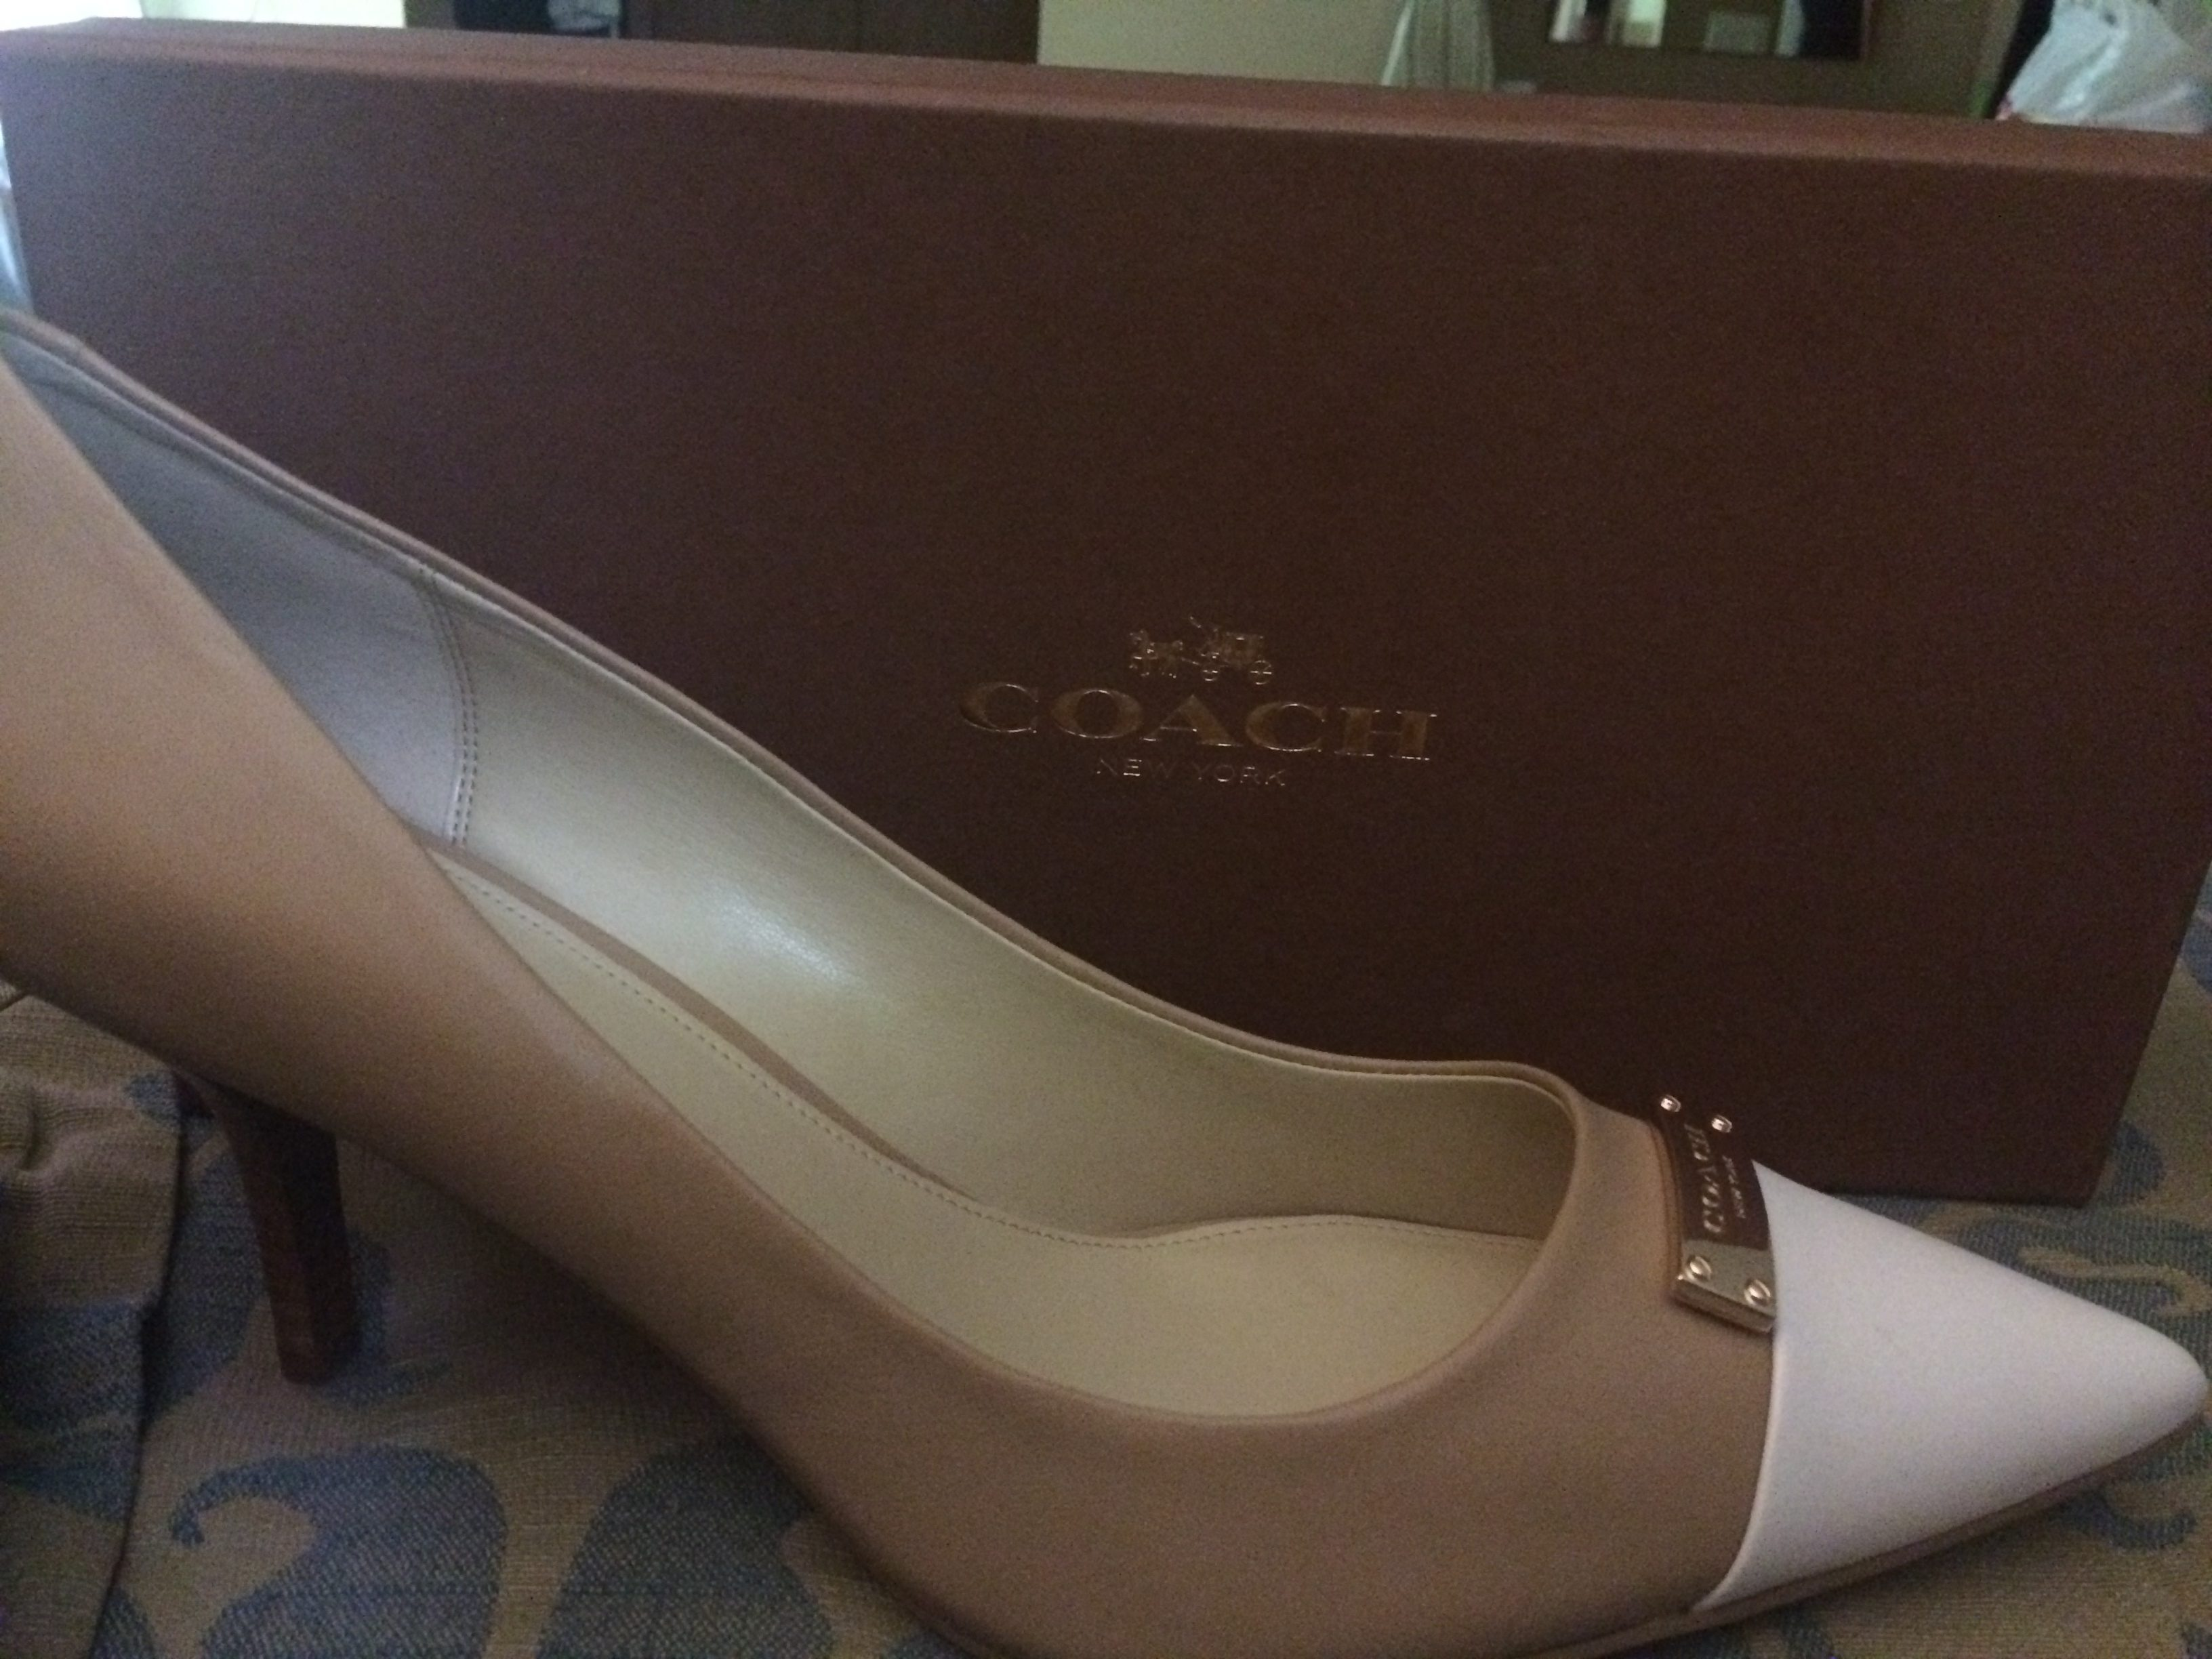 Dsw - I Purchased A Pair Of Coach Ladies Pumps At Dsw In Riverhead New York When I Got Home I Decided That I Really Liked The Shoes And Wanted A Second Pair